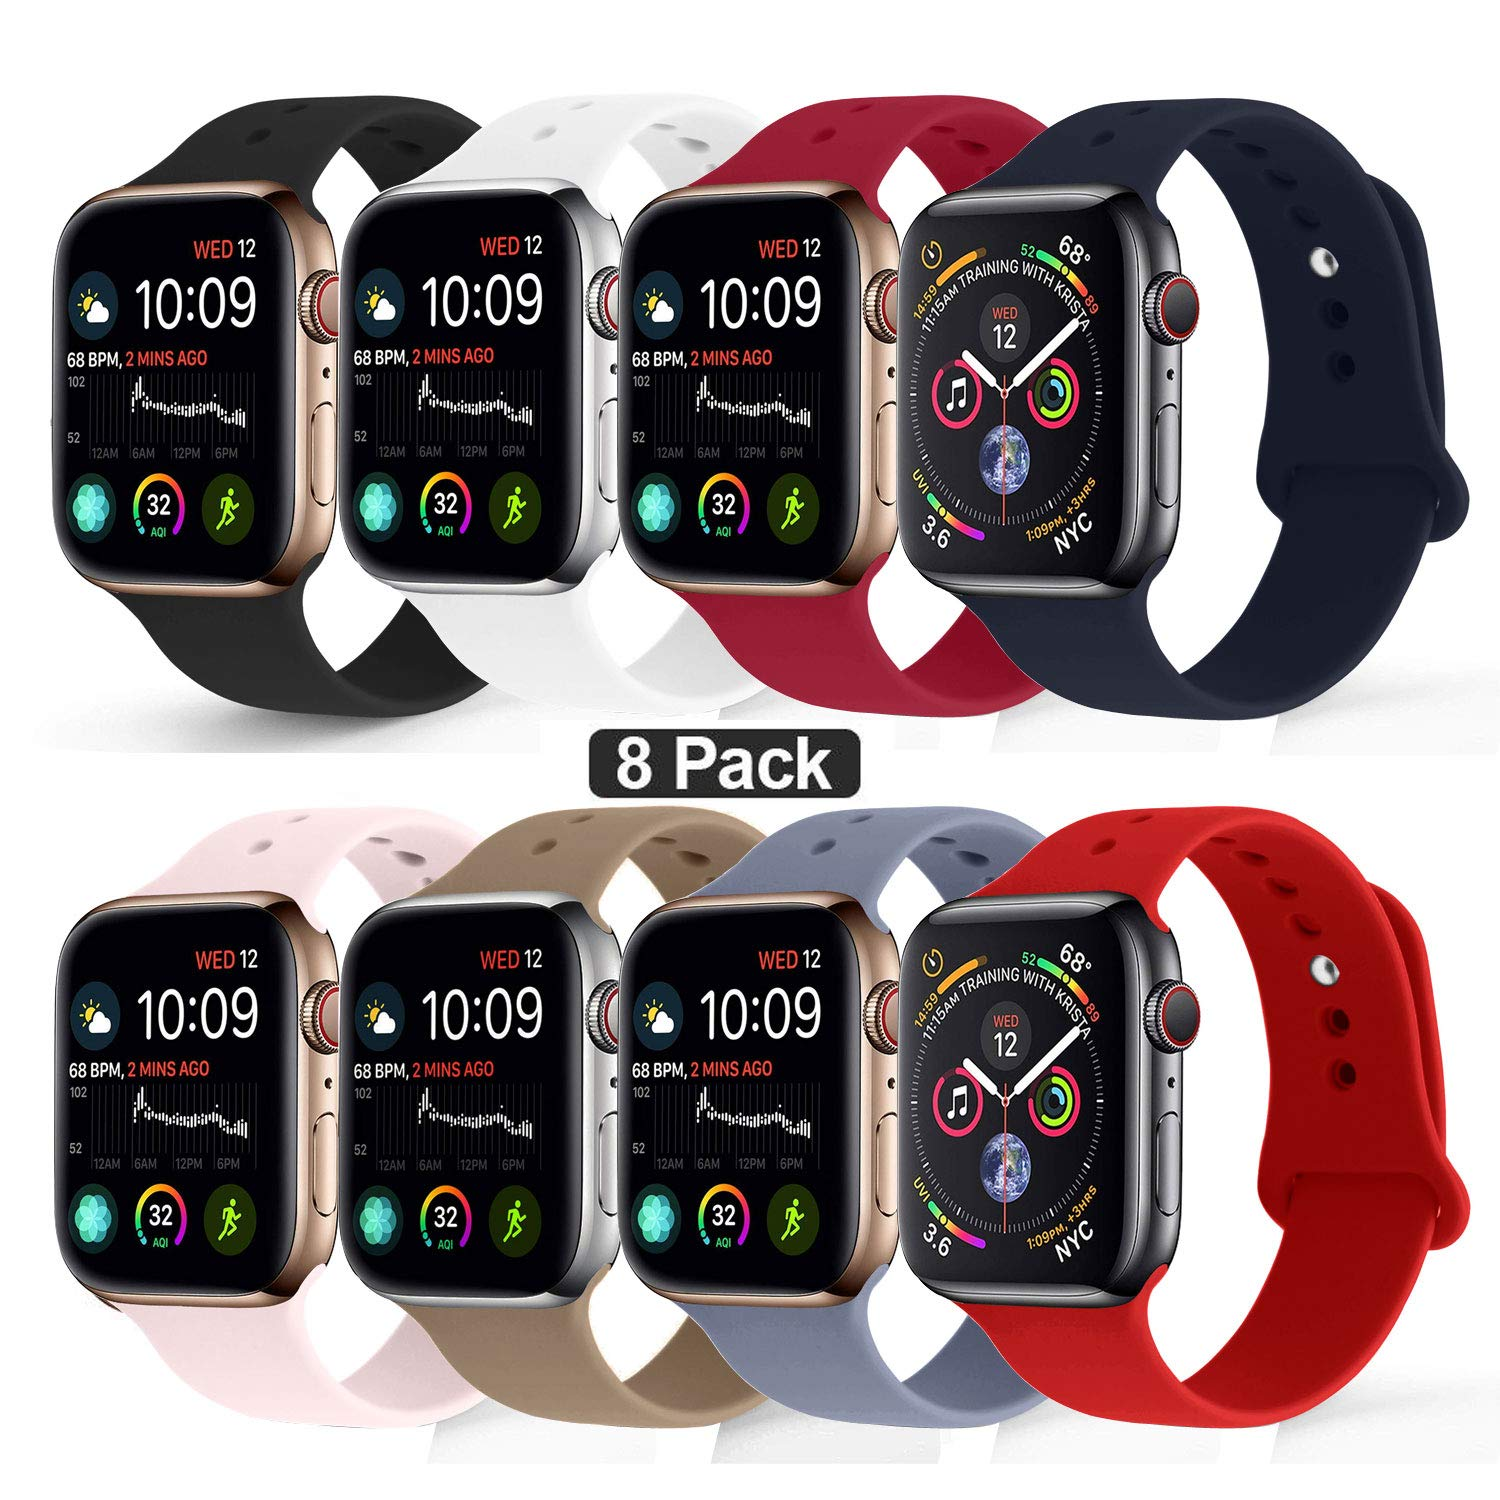 NUKELOLO Sport Band Compatible with Apple Watch 38MM 40MM, Soft Silicone Replacement Strap Compatible for Apple Watch Series 4/3/2/1 [S/M Size in 8 Colors Pack]